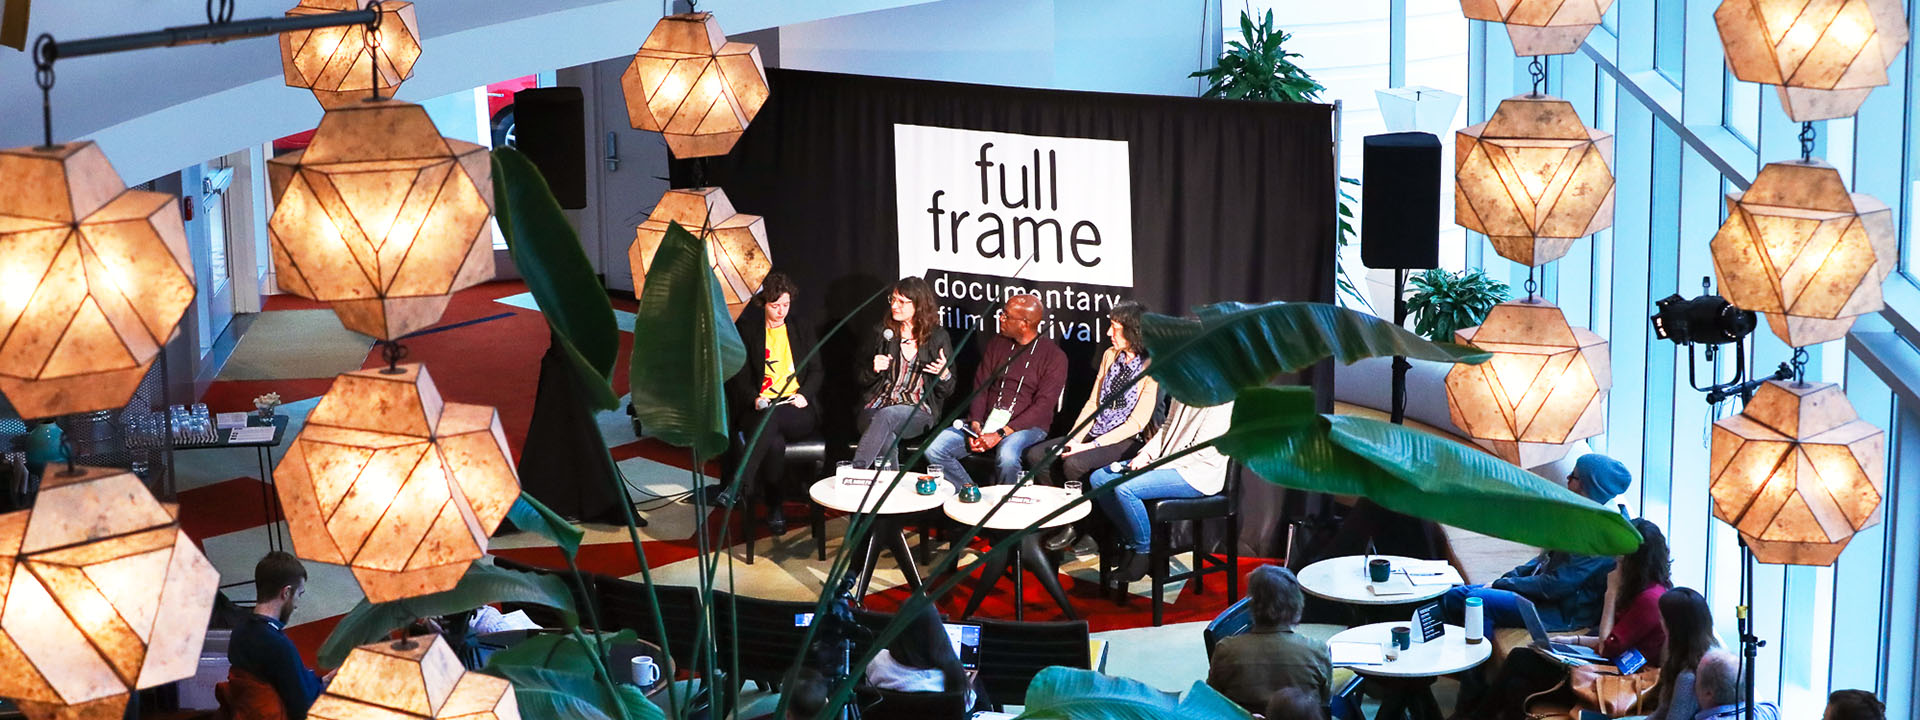 Full frame festival at The Durham